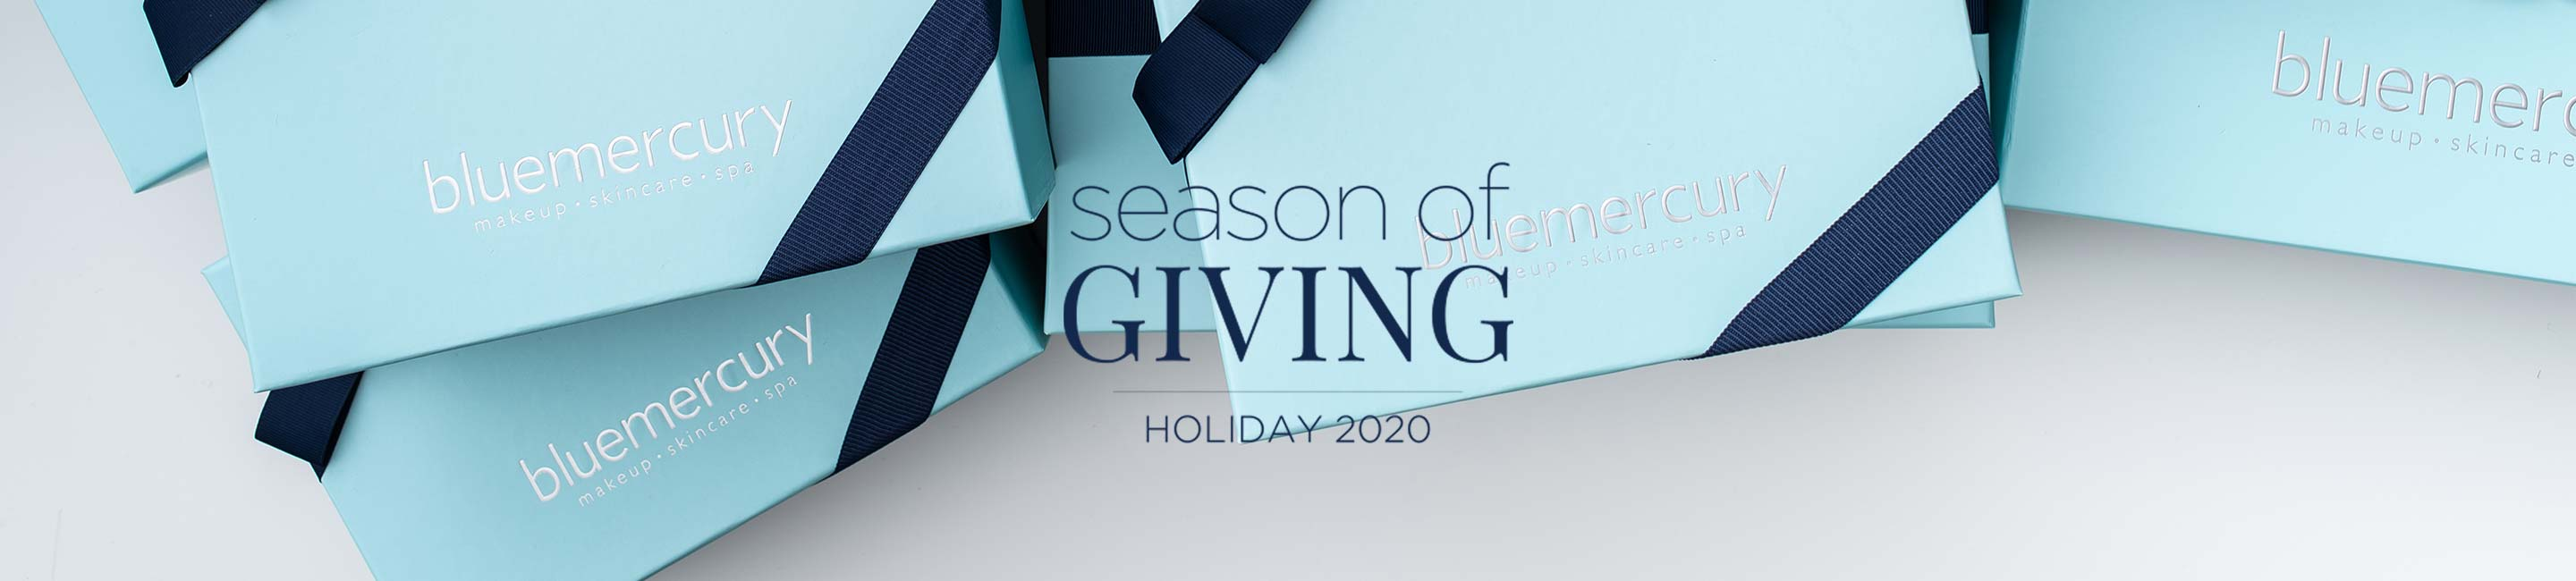 Season of Giving Holiday 2020